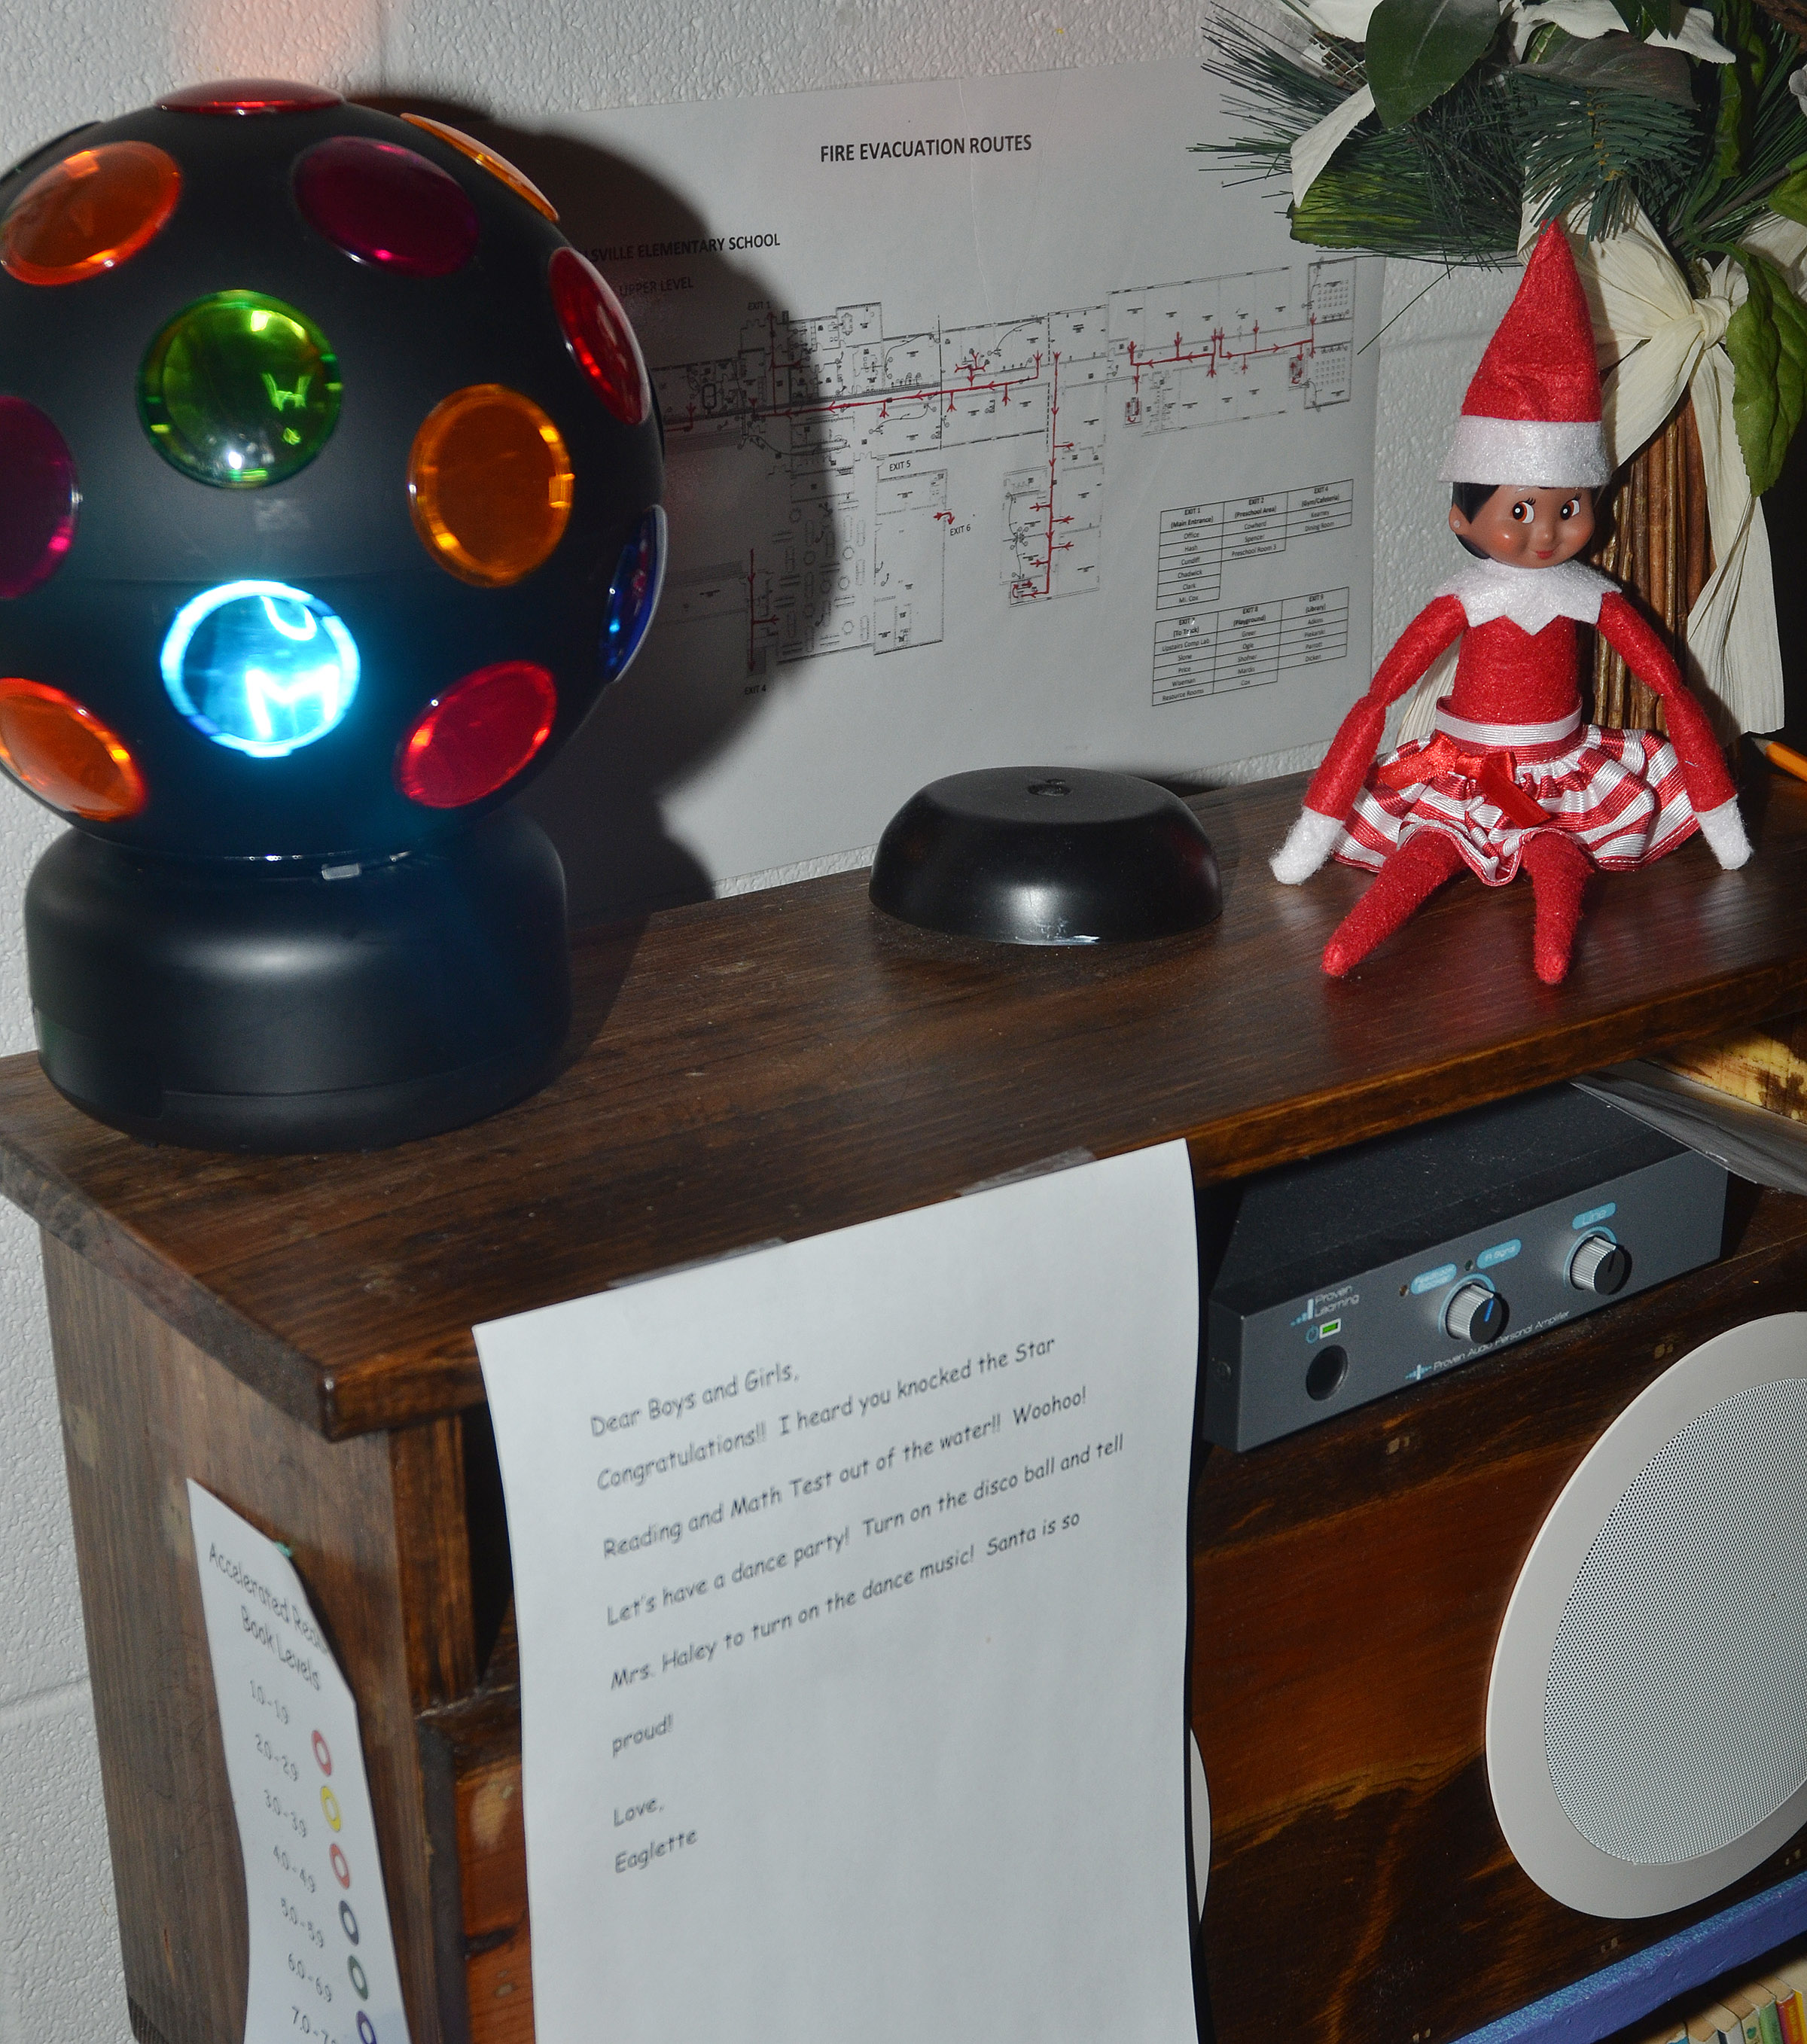 Eaglette, the elf visiting Patty Haley's third-grade classroom at CES, left a note for students telling them to have a disco party to celebrate their high test scores.